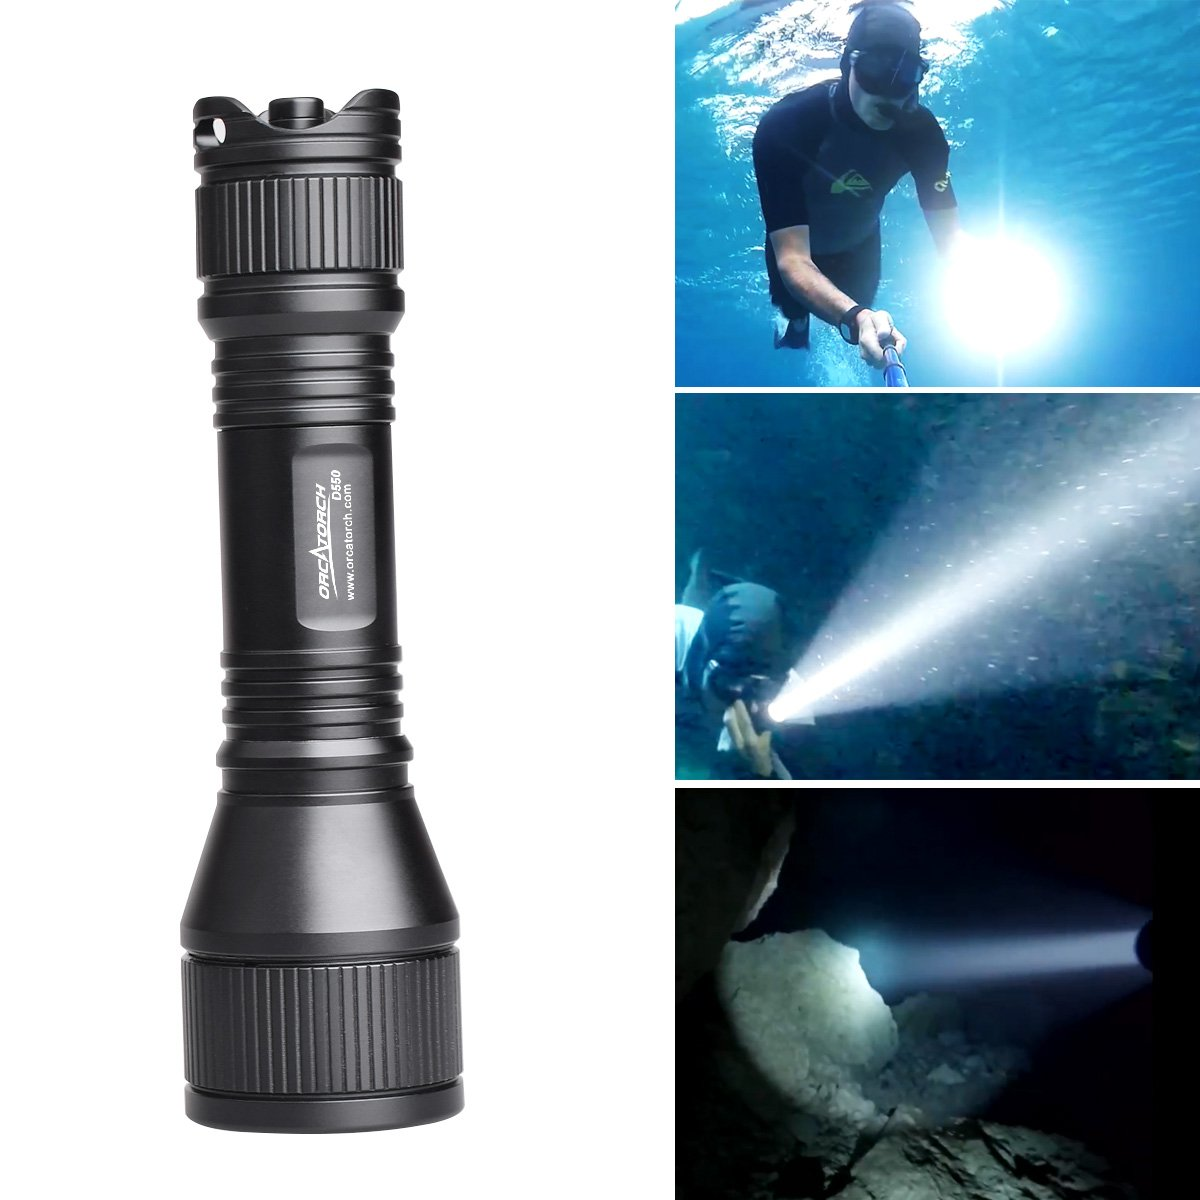 ORCATORCH D550 970 LM Diving Flashlight Underwater Scuba Diving Light, XM-L2 LED Submarine Flashlight